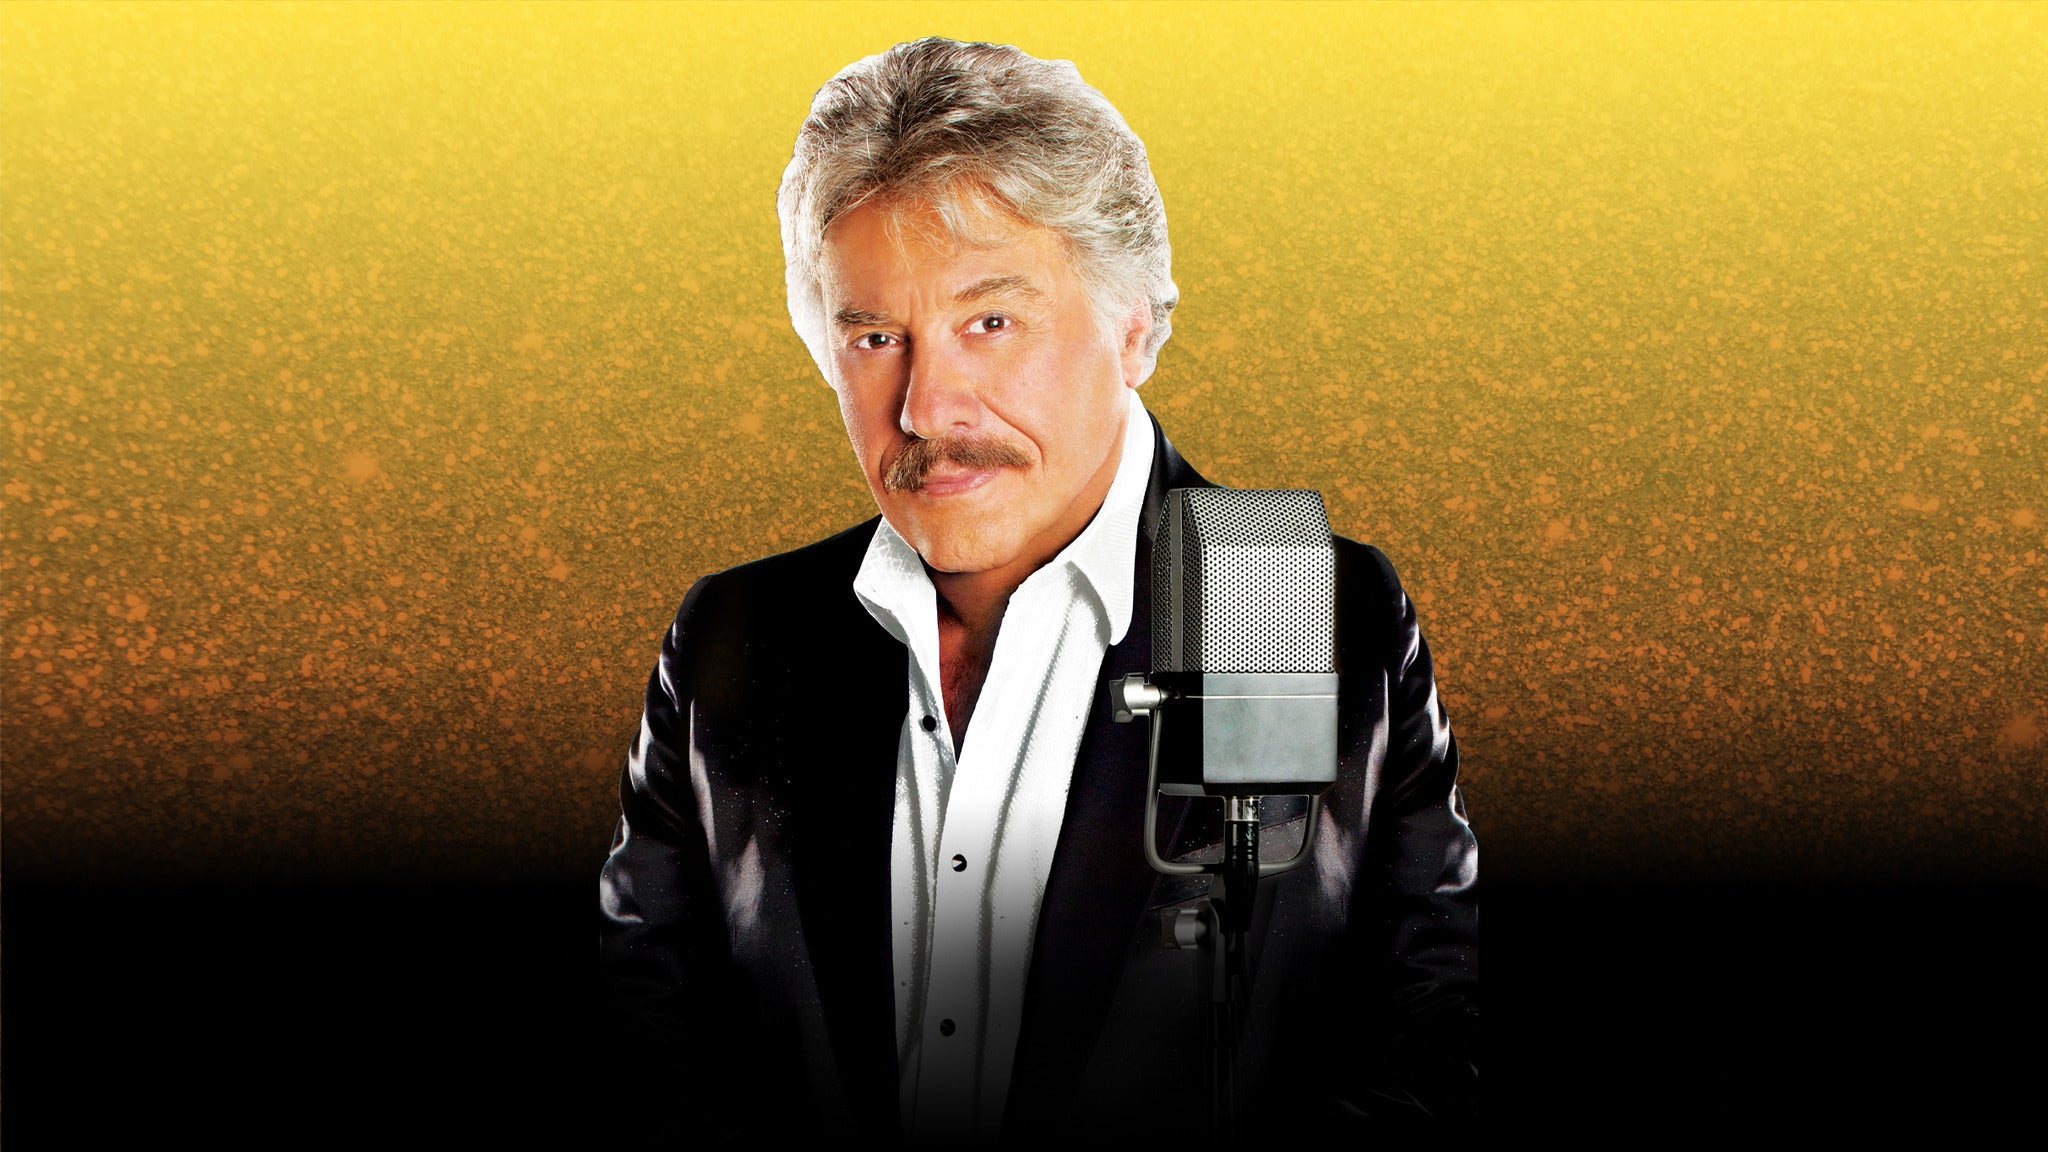 Christmas Shows Orlando 2020 Tony Orlando Tickets, 2020 2021 Concert Tour Dates | Ticketmaster